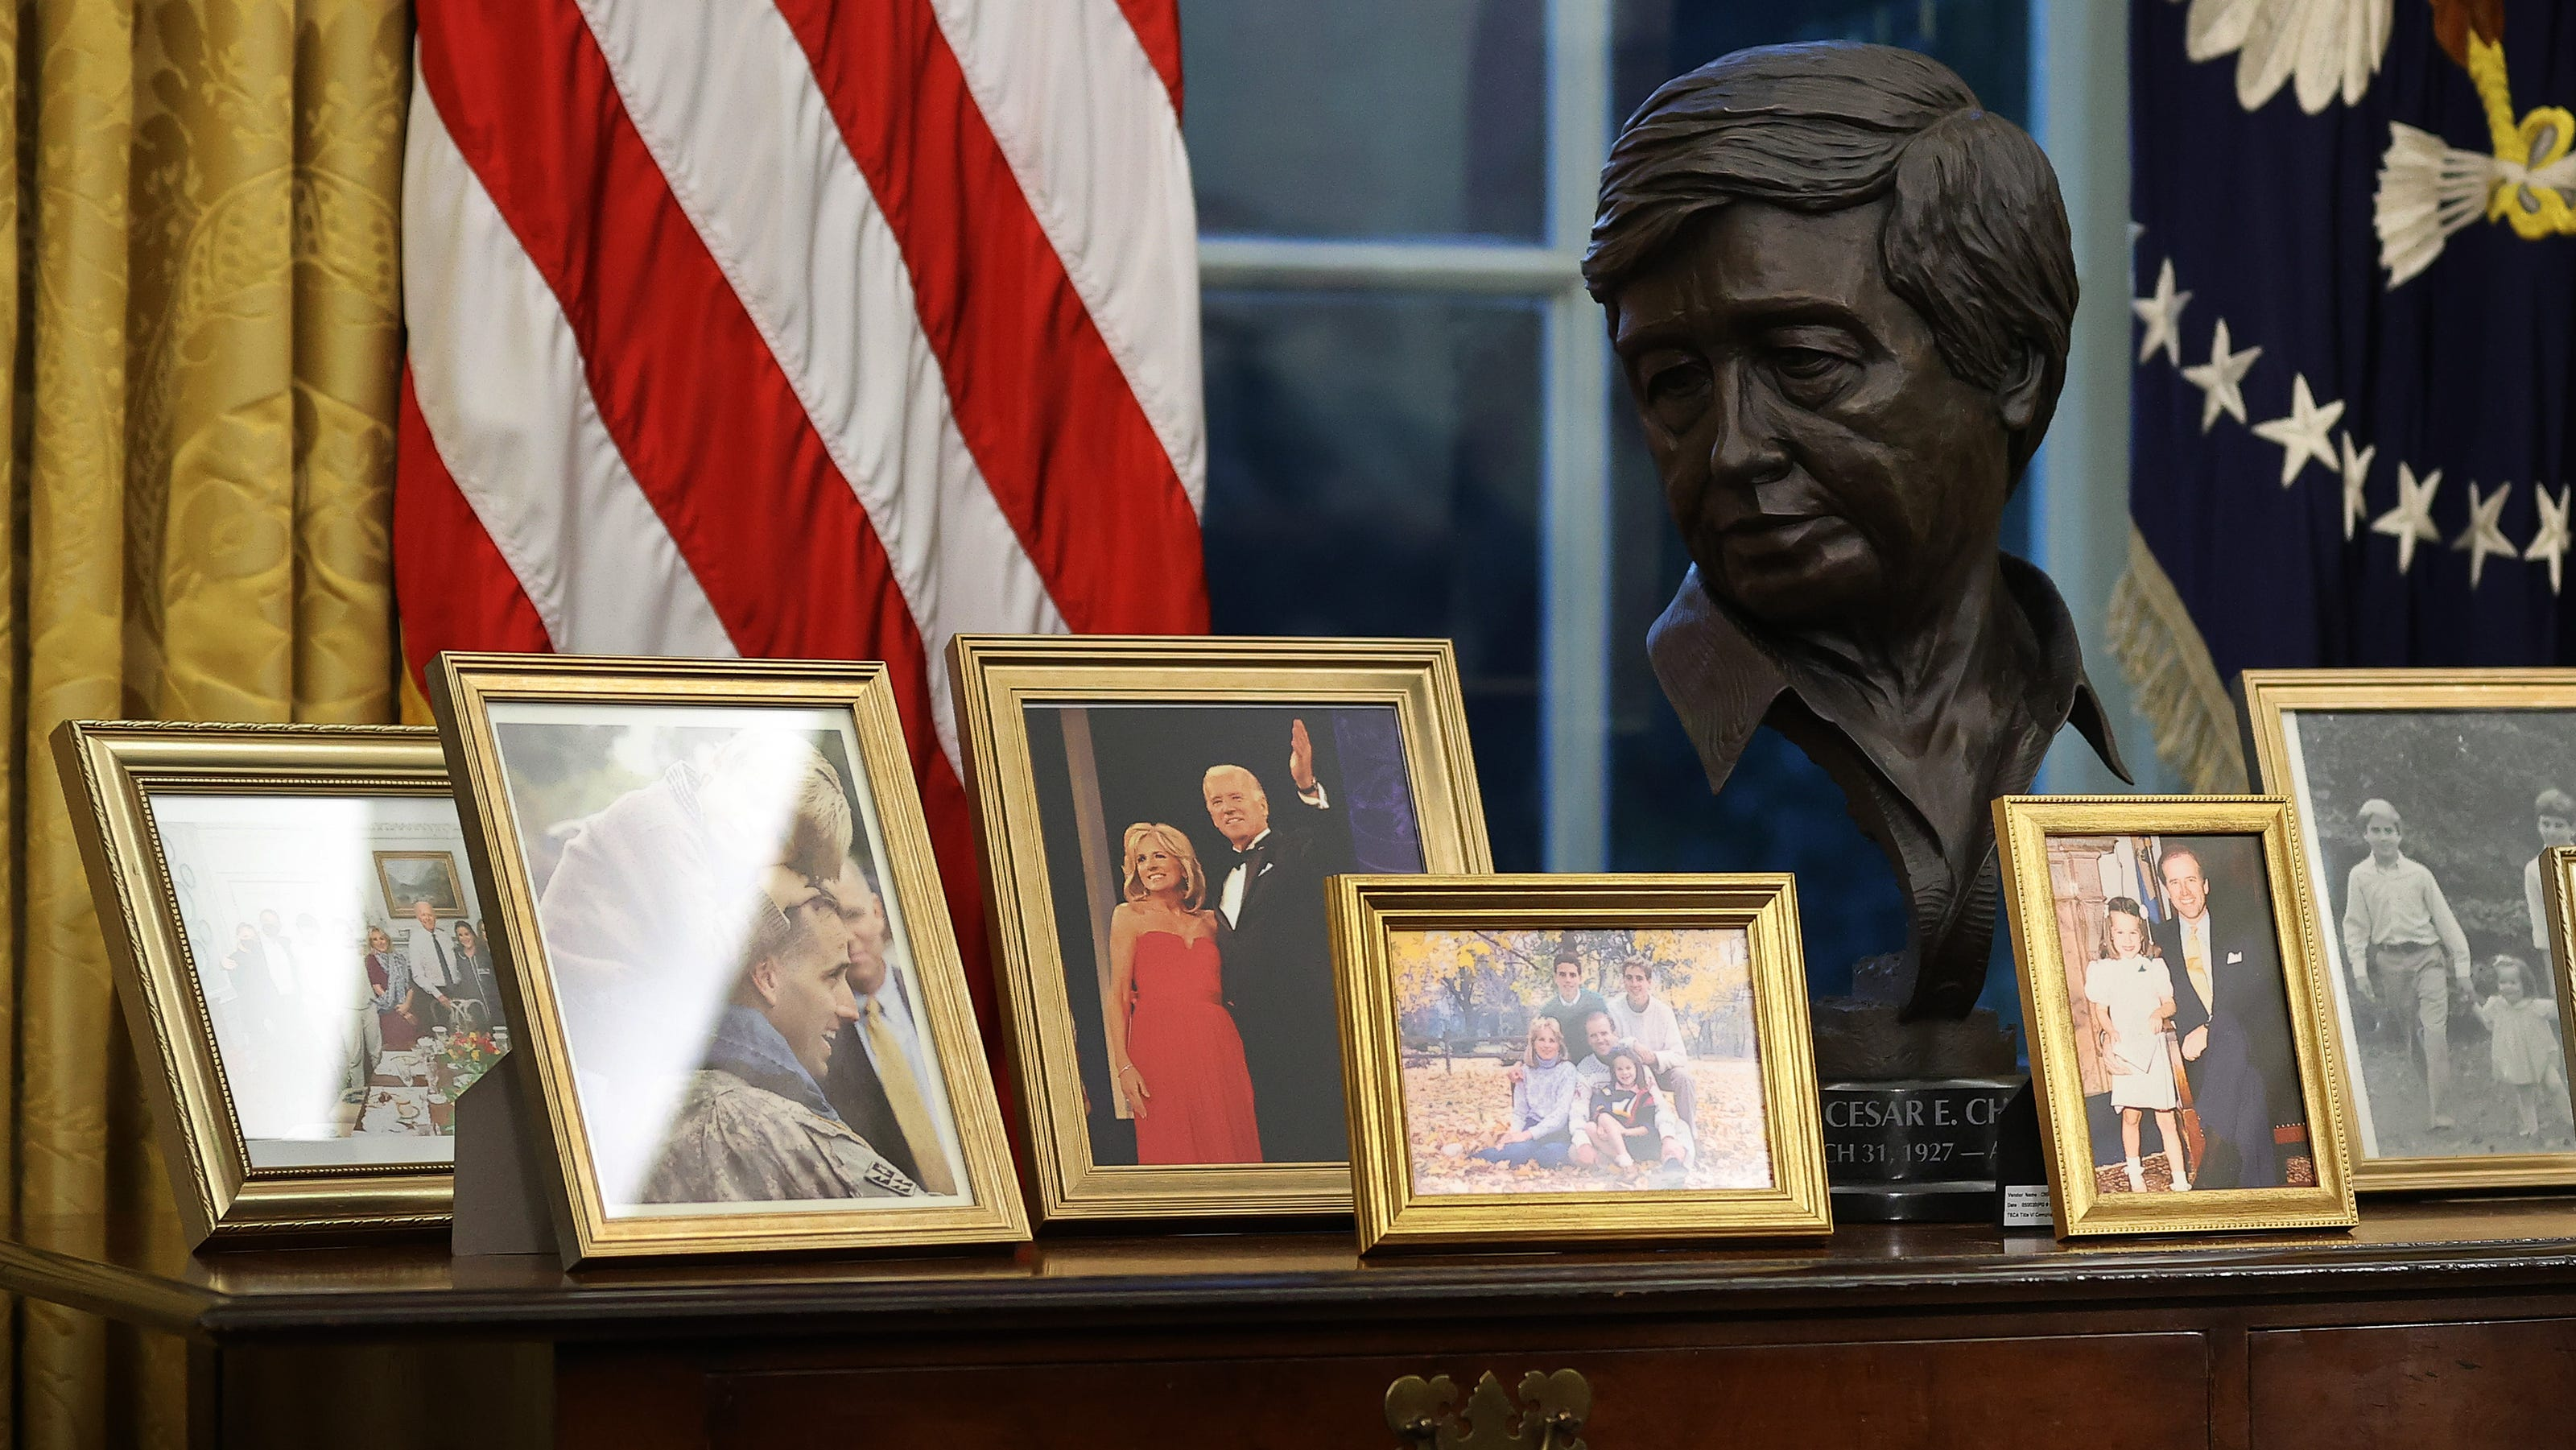 President Joe Biden's Oval Office: A bust of Cesar Chavez, painting of Roosevelt and more